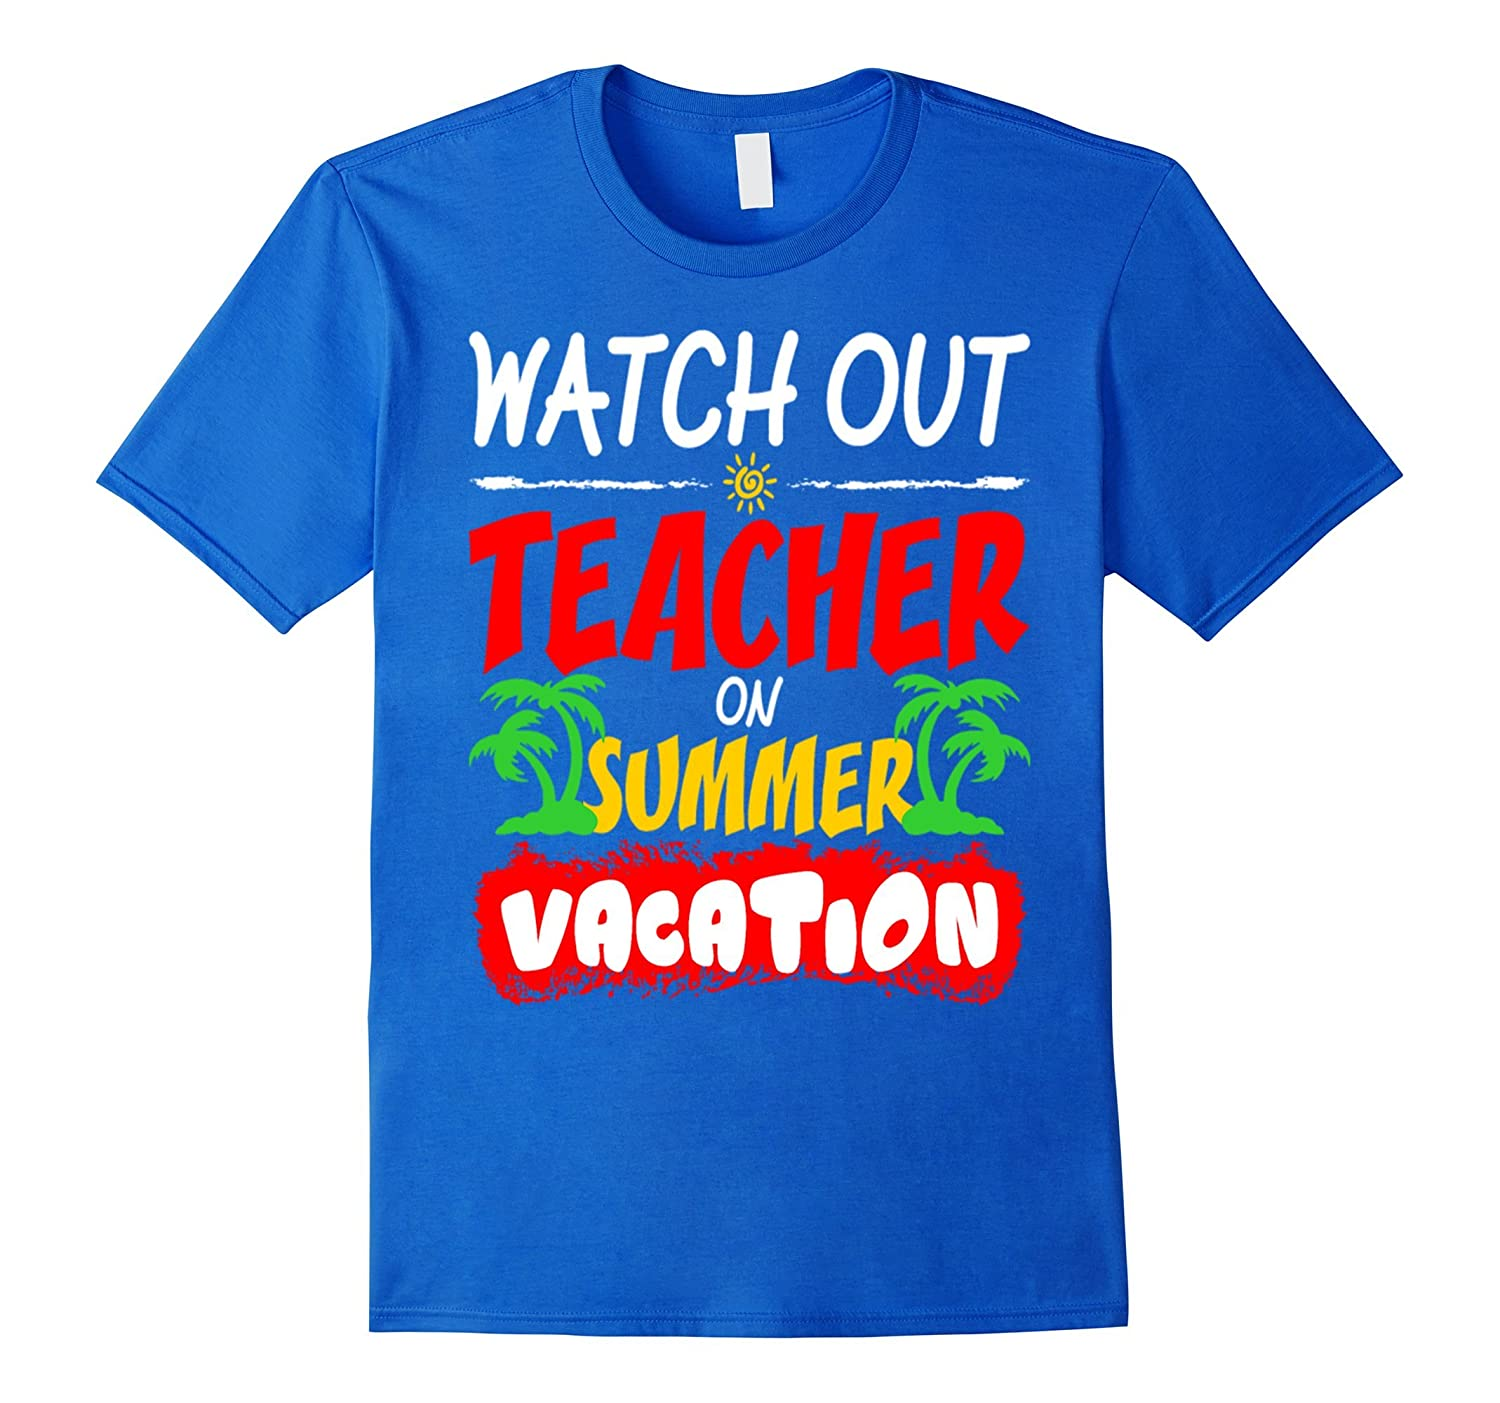 Watch out teacher on summer vacation T-shirt cute funny gift-Vaci